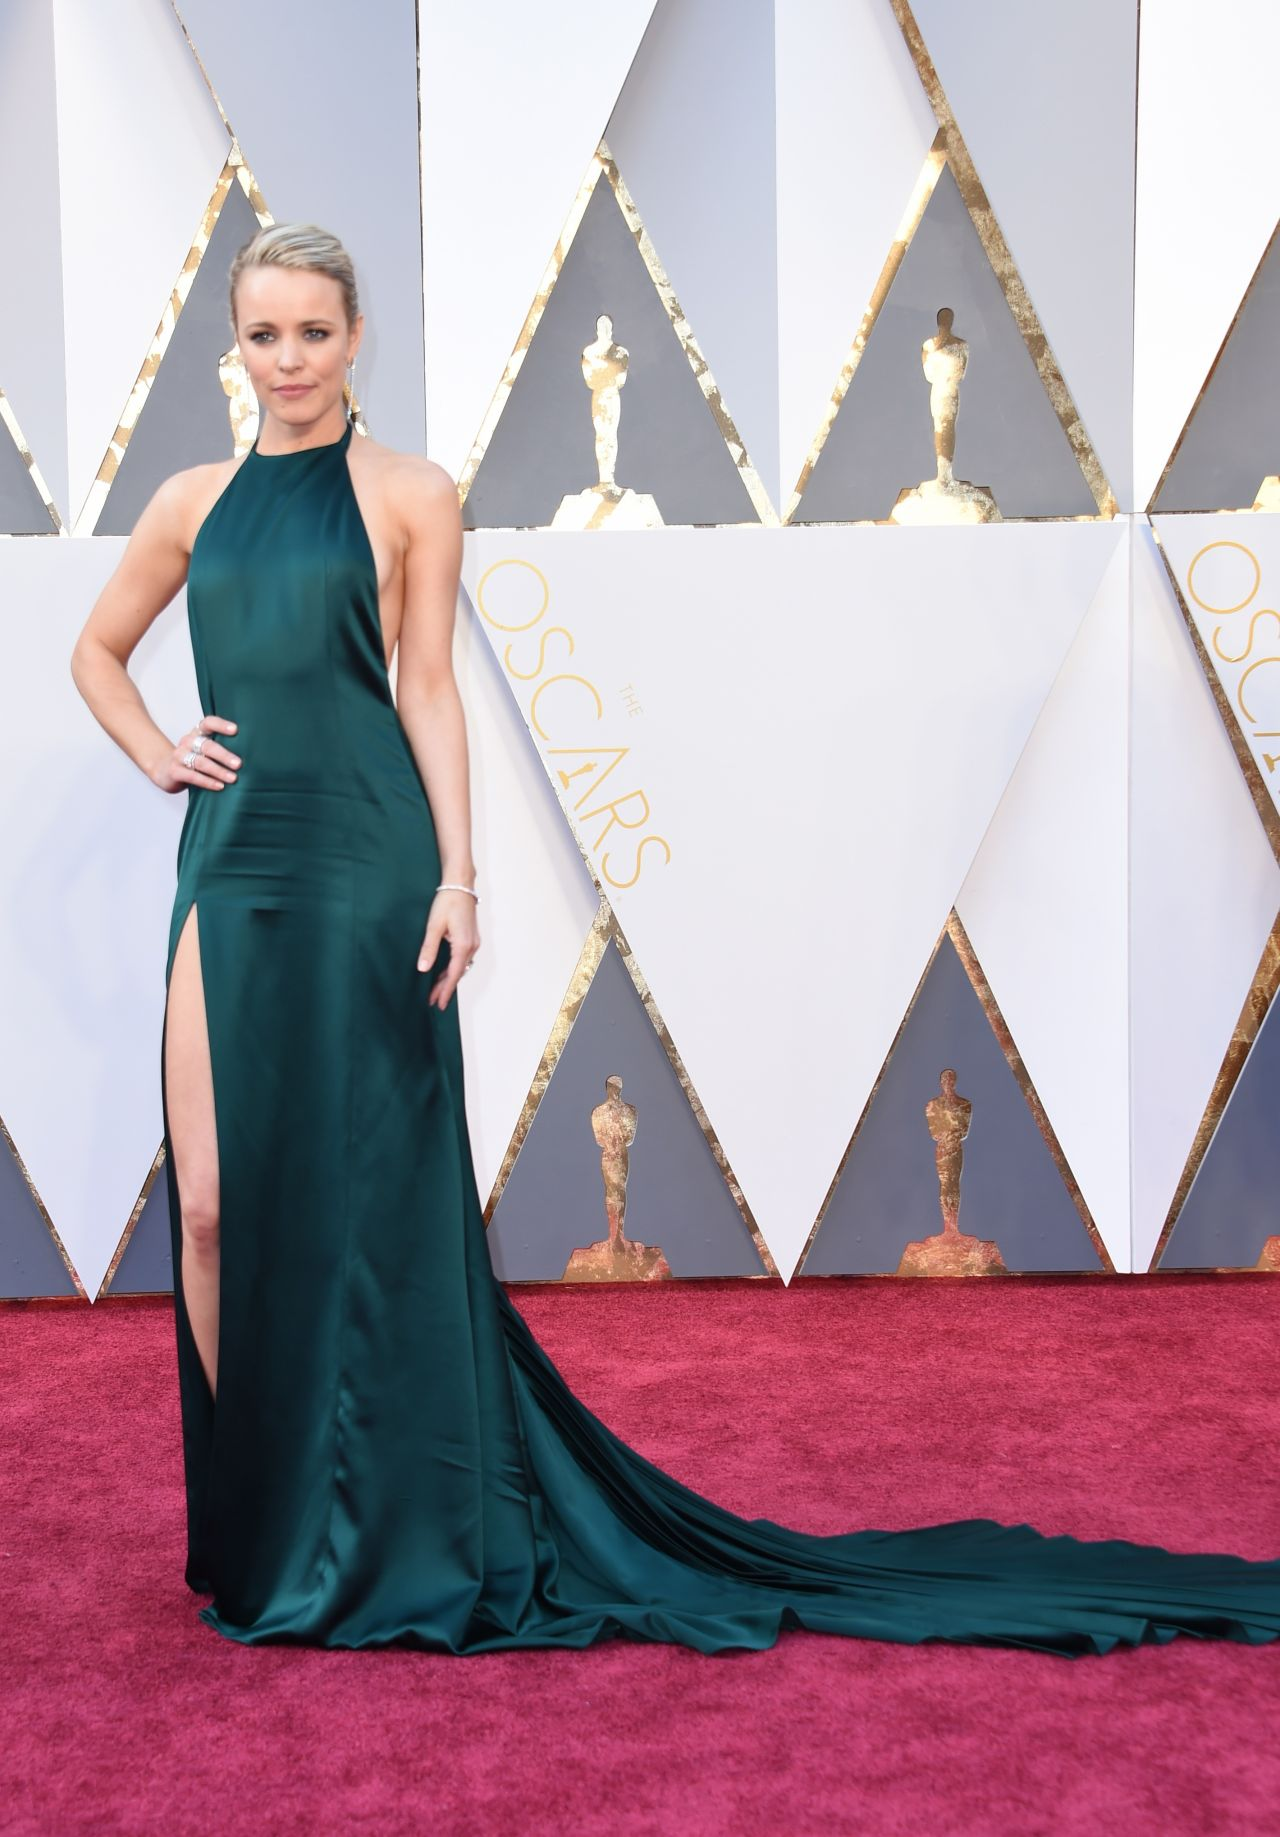 rachel-mcadams-oscars-2016-in-hollywood-ca-2-28-2016-2